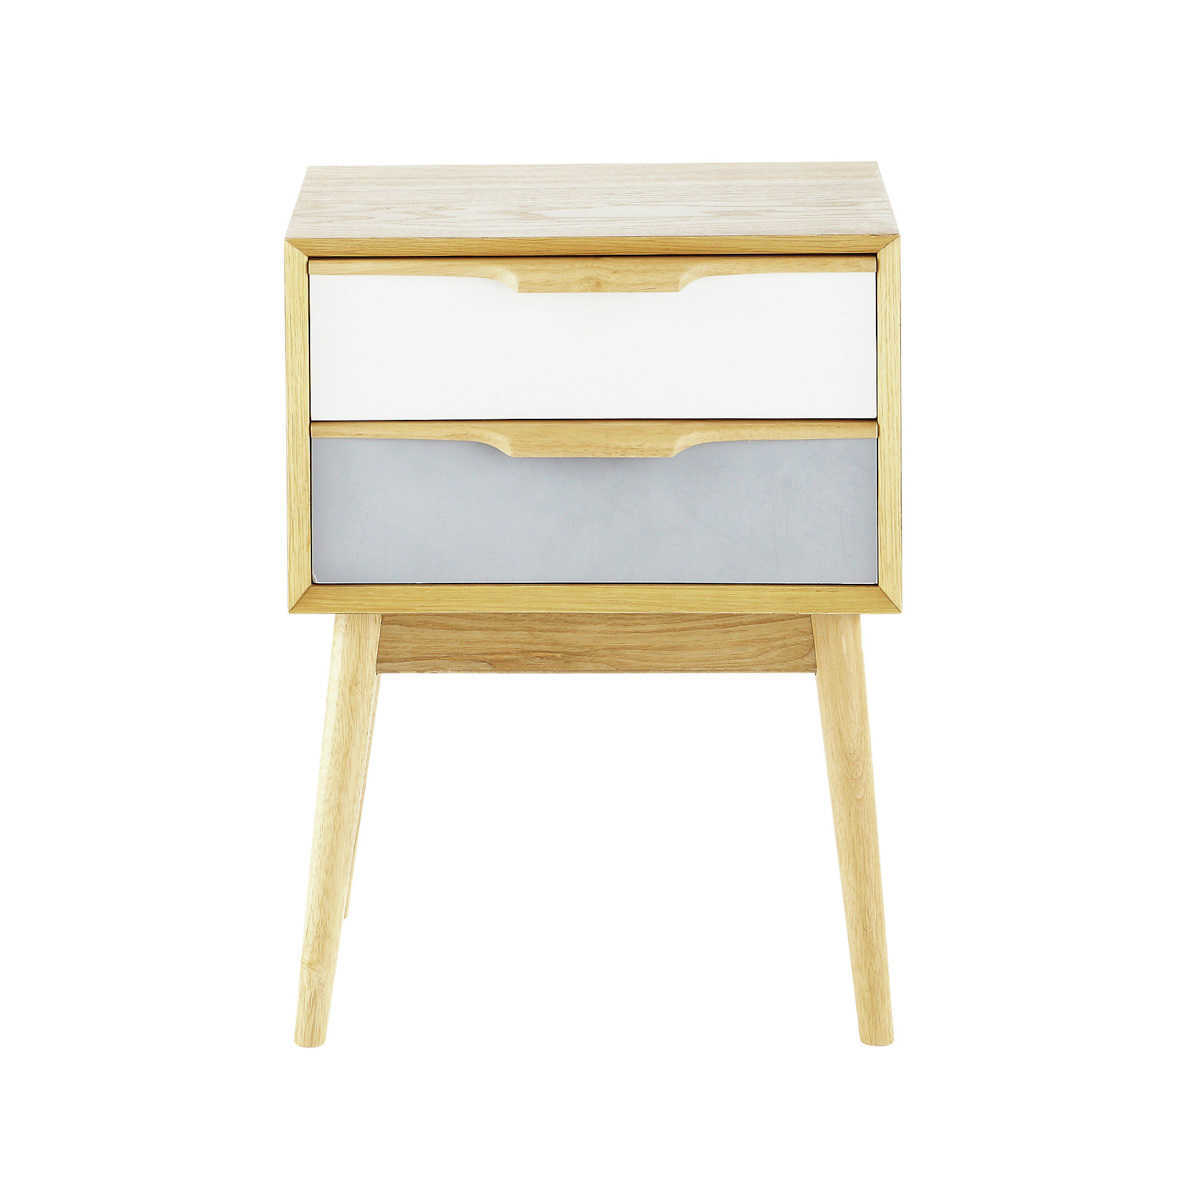 O d nicher une table de nuit design h ll blogzine for Tabouret table de chevet